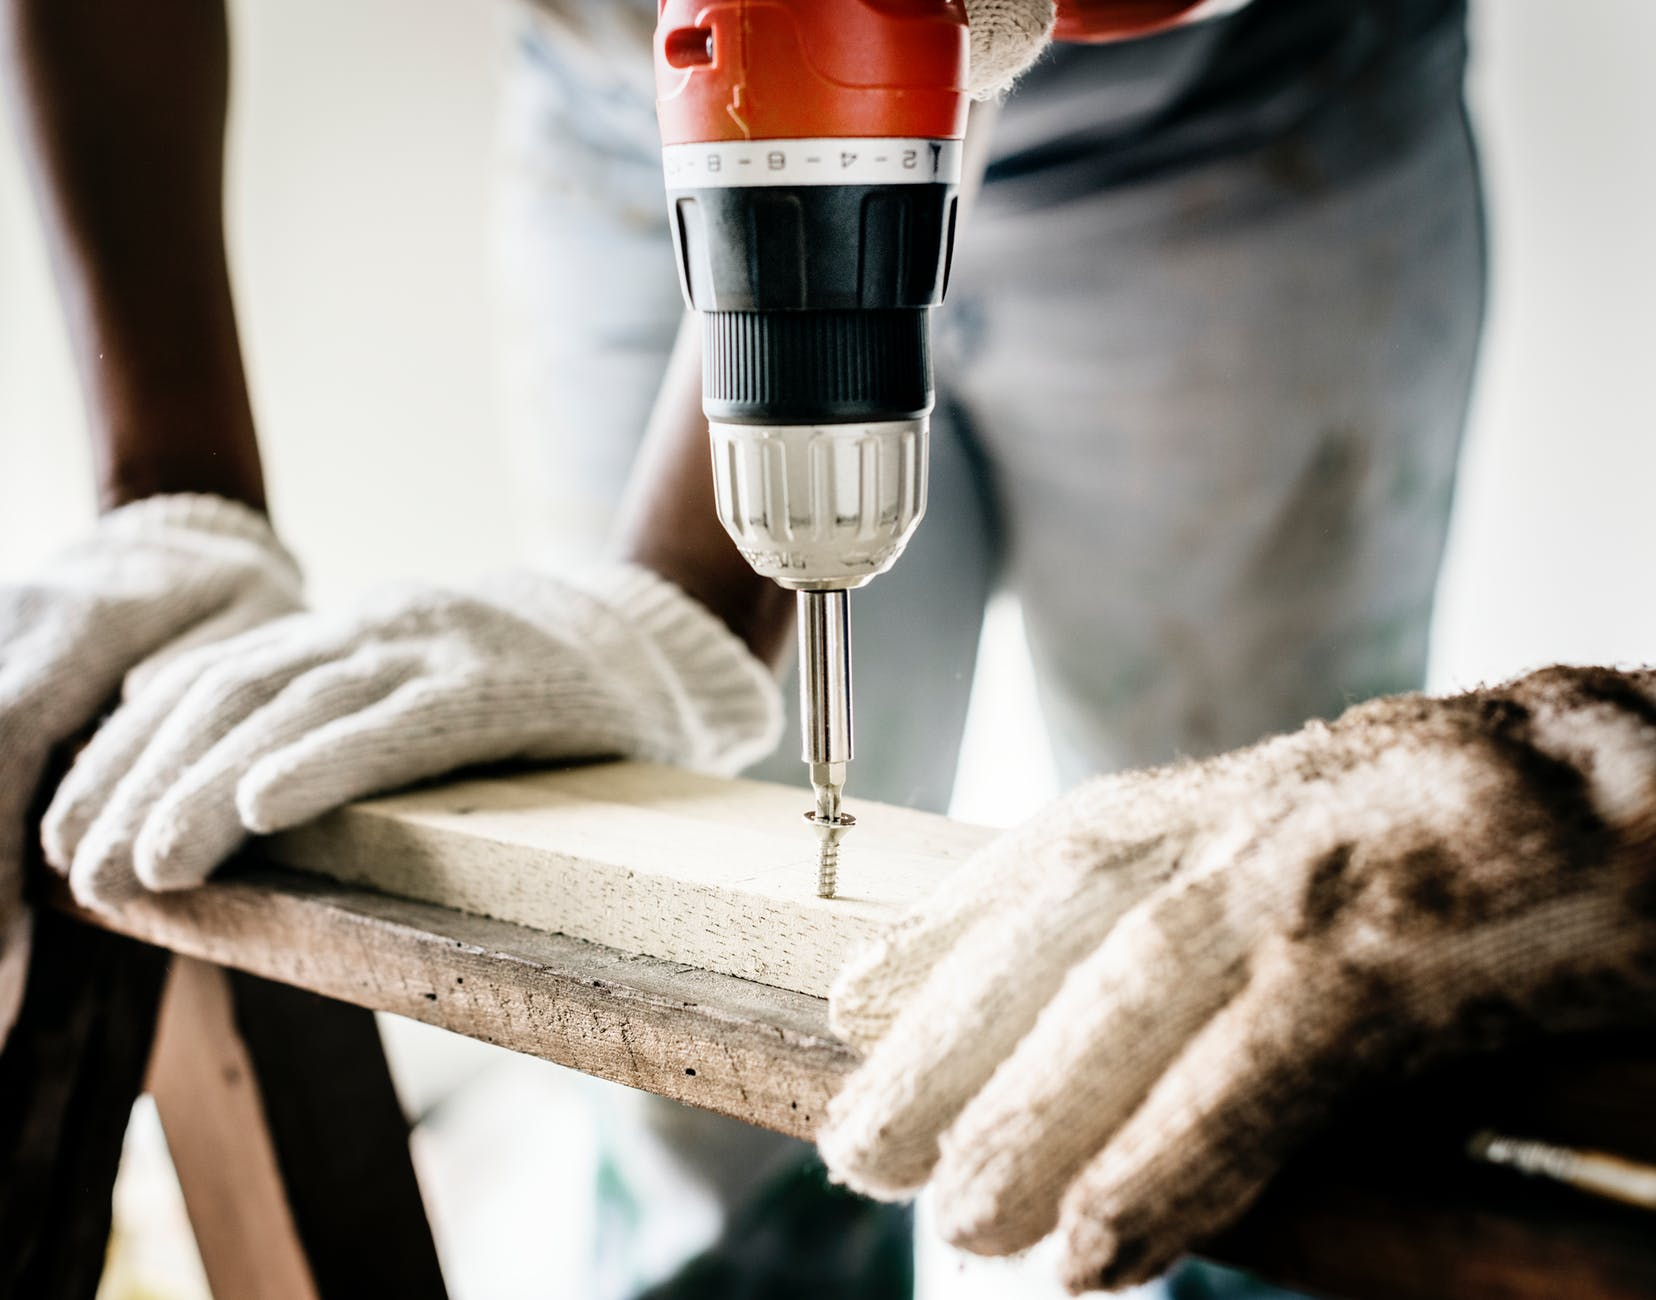 repairman doing screw drilling - 2 Things to Consider When Hiring a Kitchen Contractor